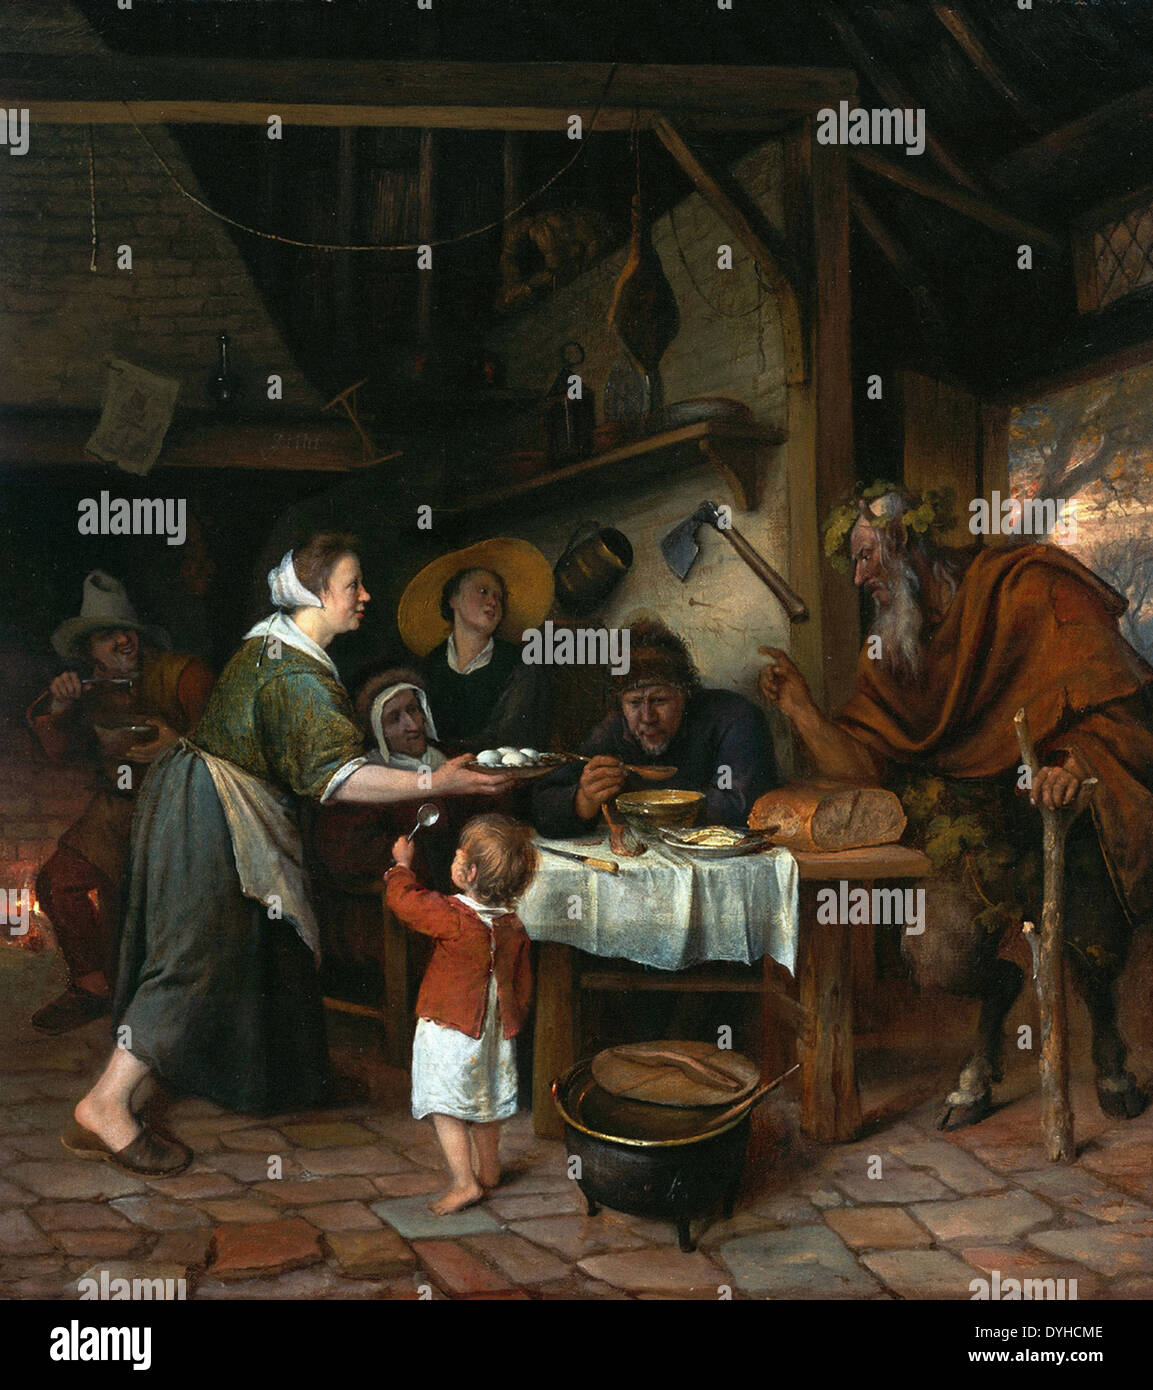 Jan Steen Satyr and the Peasant Family - Stock Image